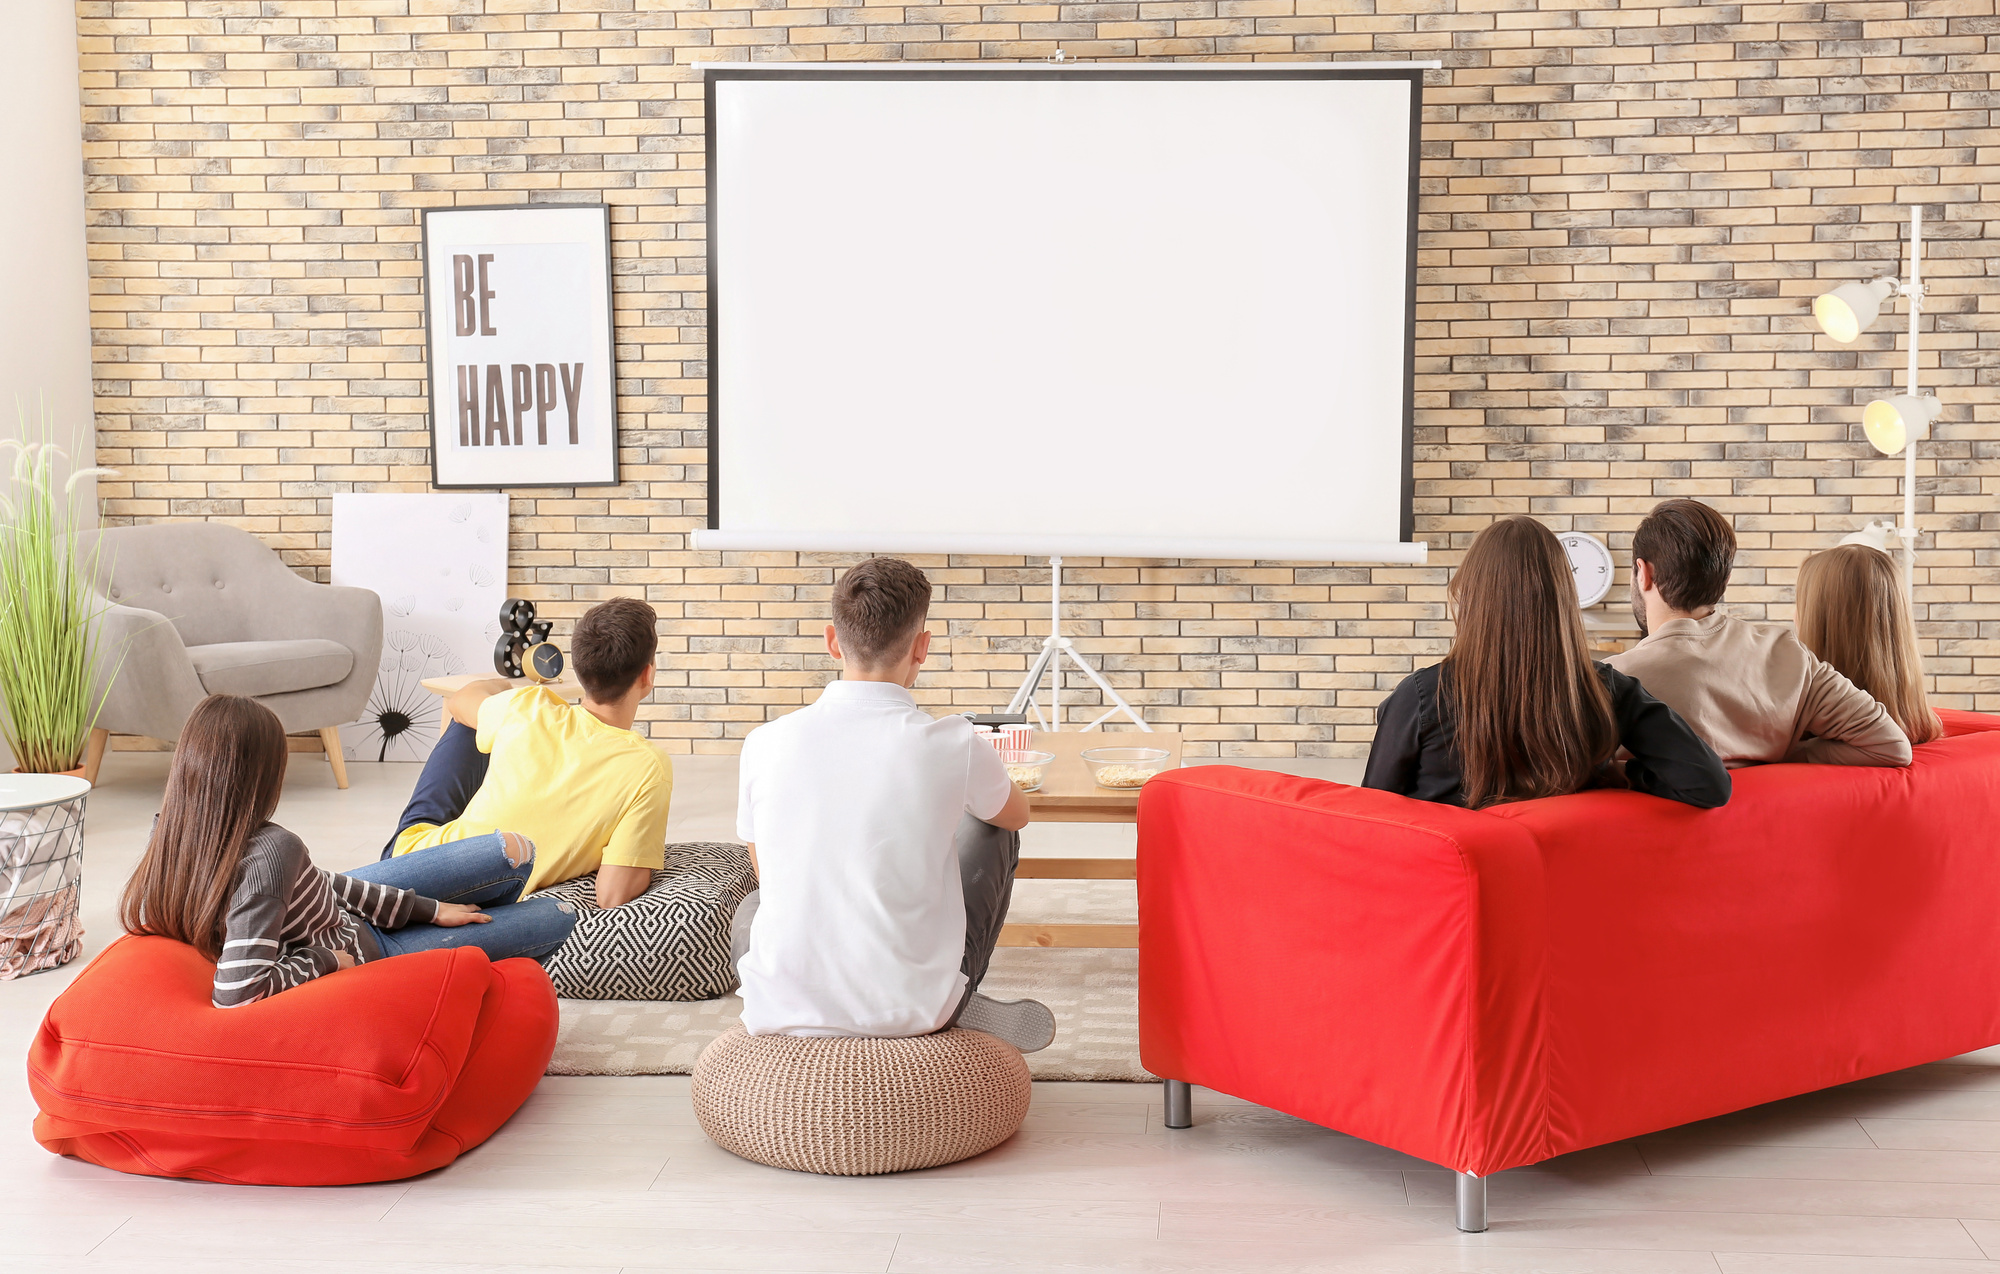 5 Creative Movie Night Ideas for Great Family Time at Home